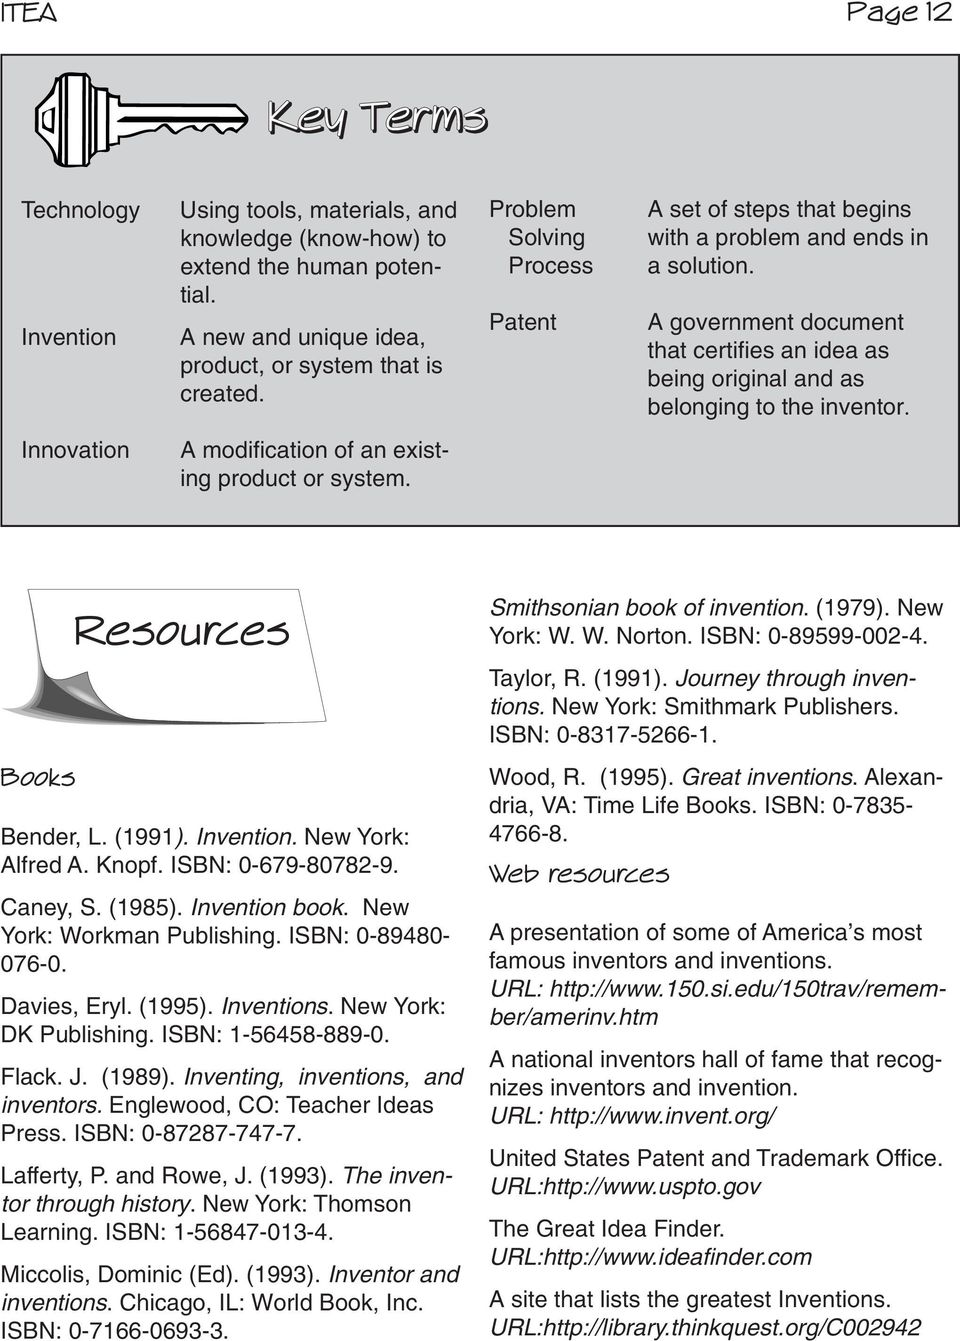 Innovation A modification of an existing product or system. Books Resources Bender, L. (1991). Invention. New York: Alfred A. Knopf. ISBN: 0-679-80782-9. Caney, S. (1985). Invention book.